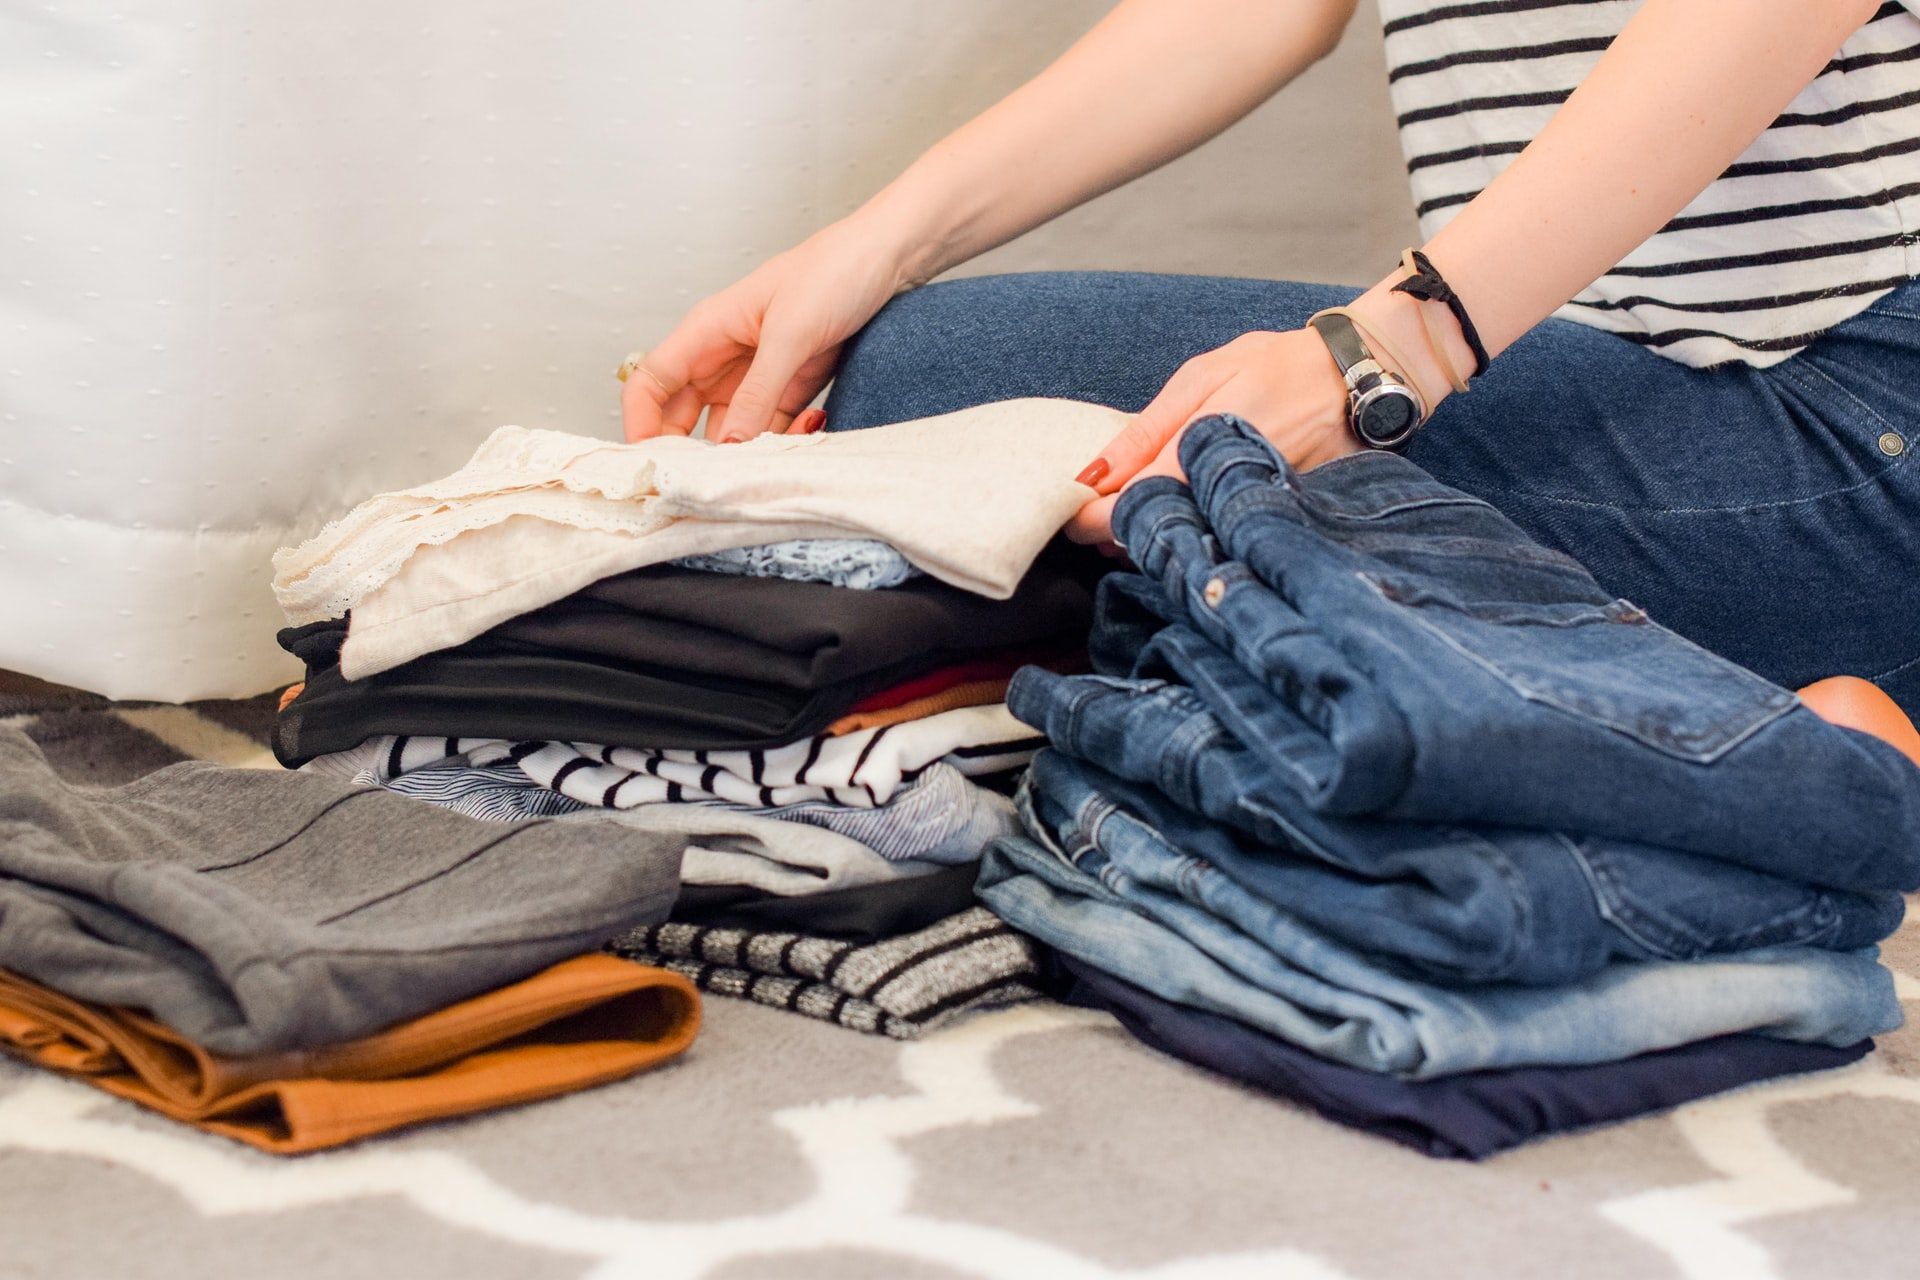 Own A Lot of Clothes? 5 Must-Know Packing Tips